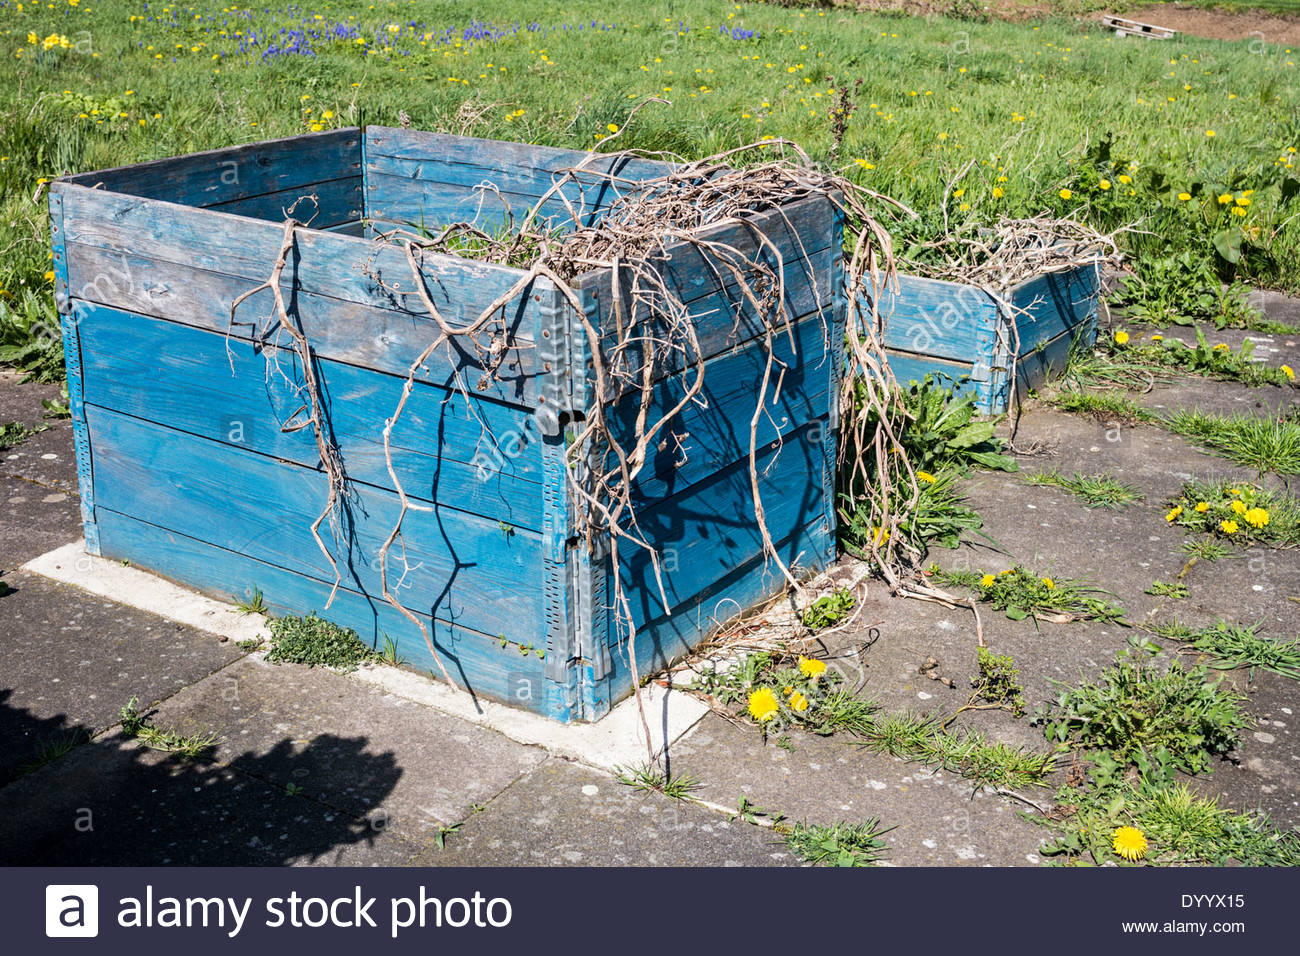 Raised bed on an allotment with dead plants - Stock Image